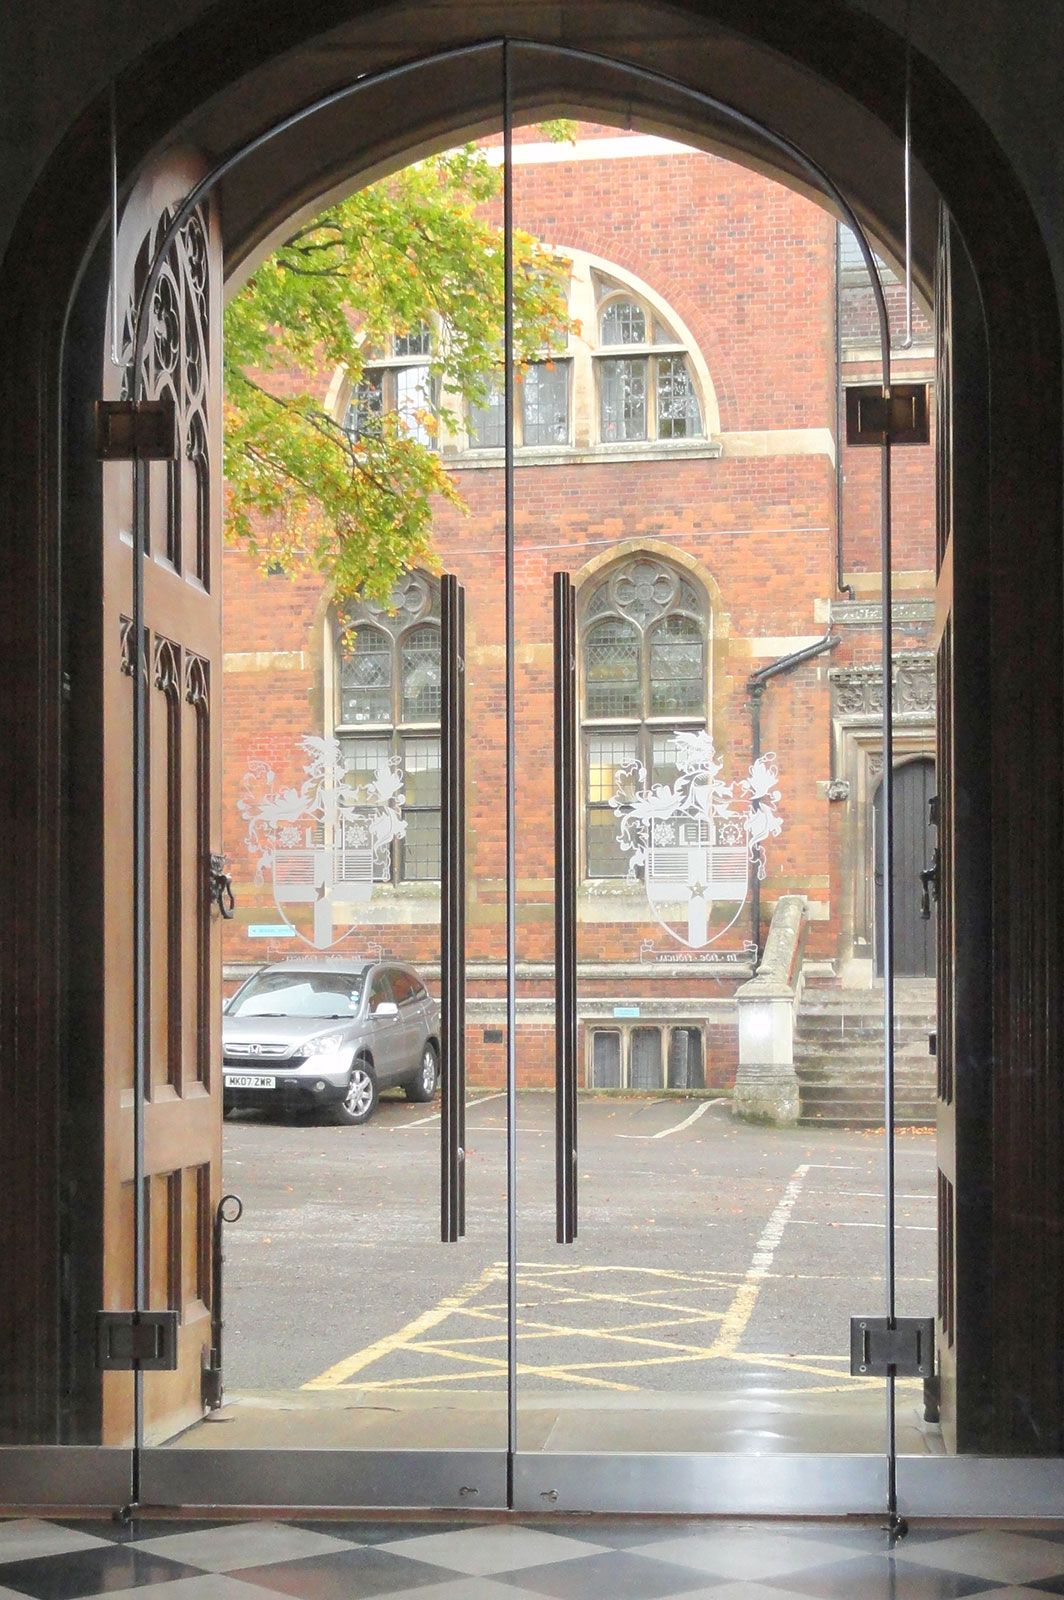 External Arched Glass Doors at Leys School Cambridge